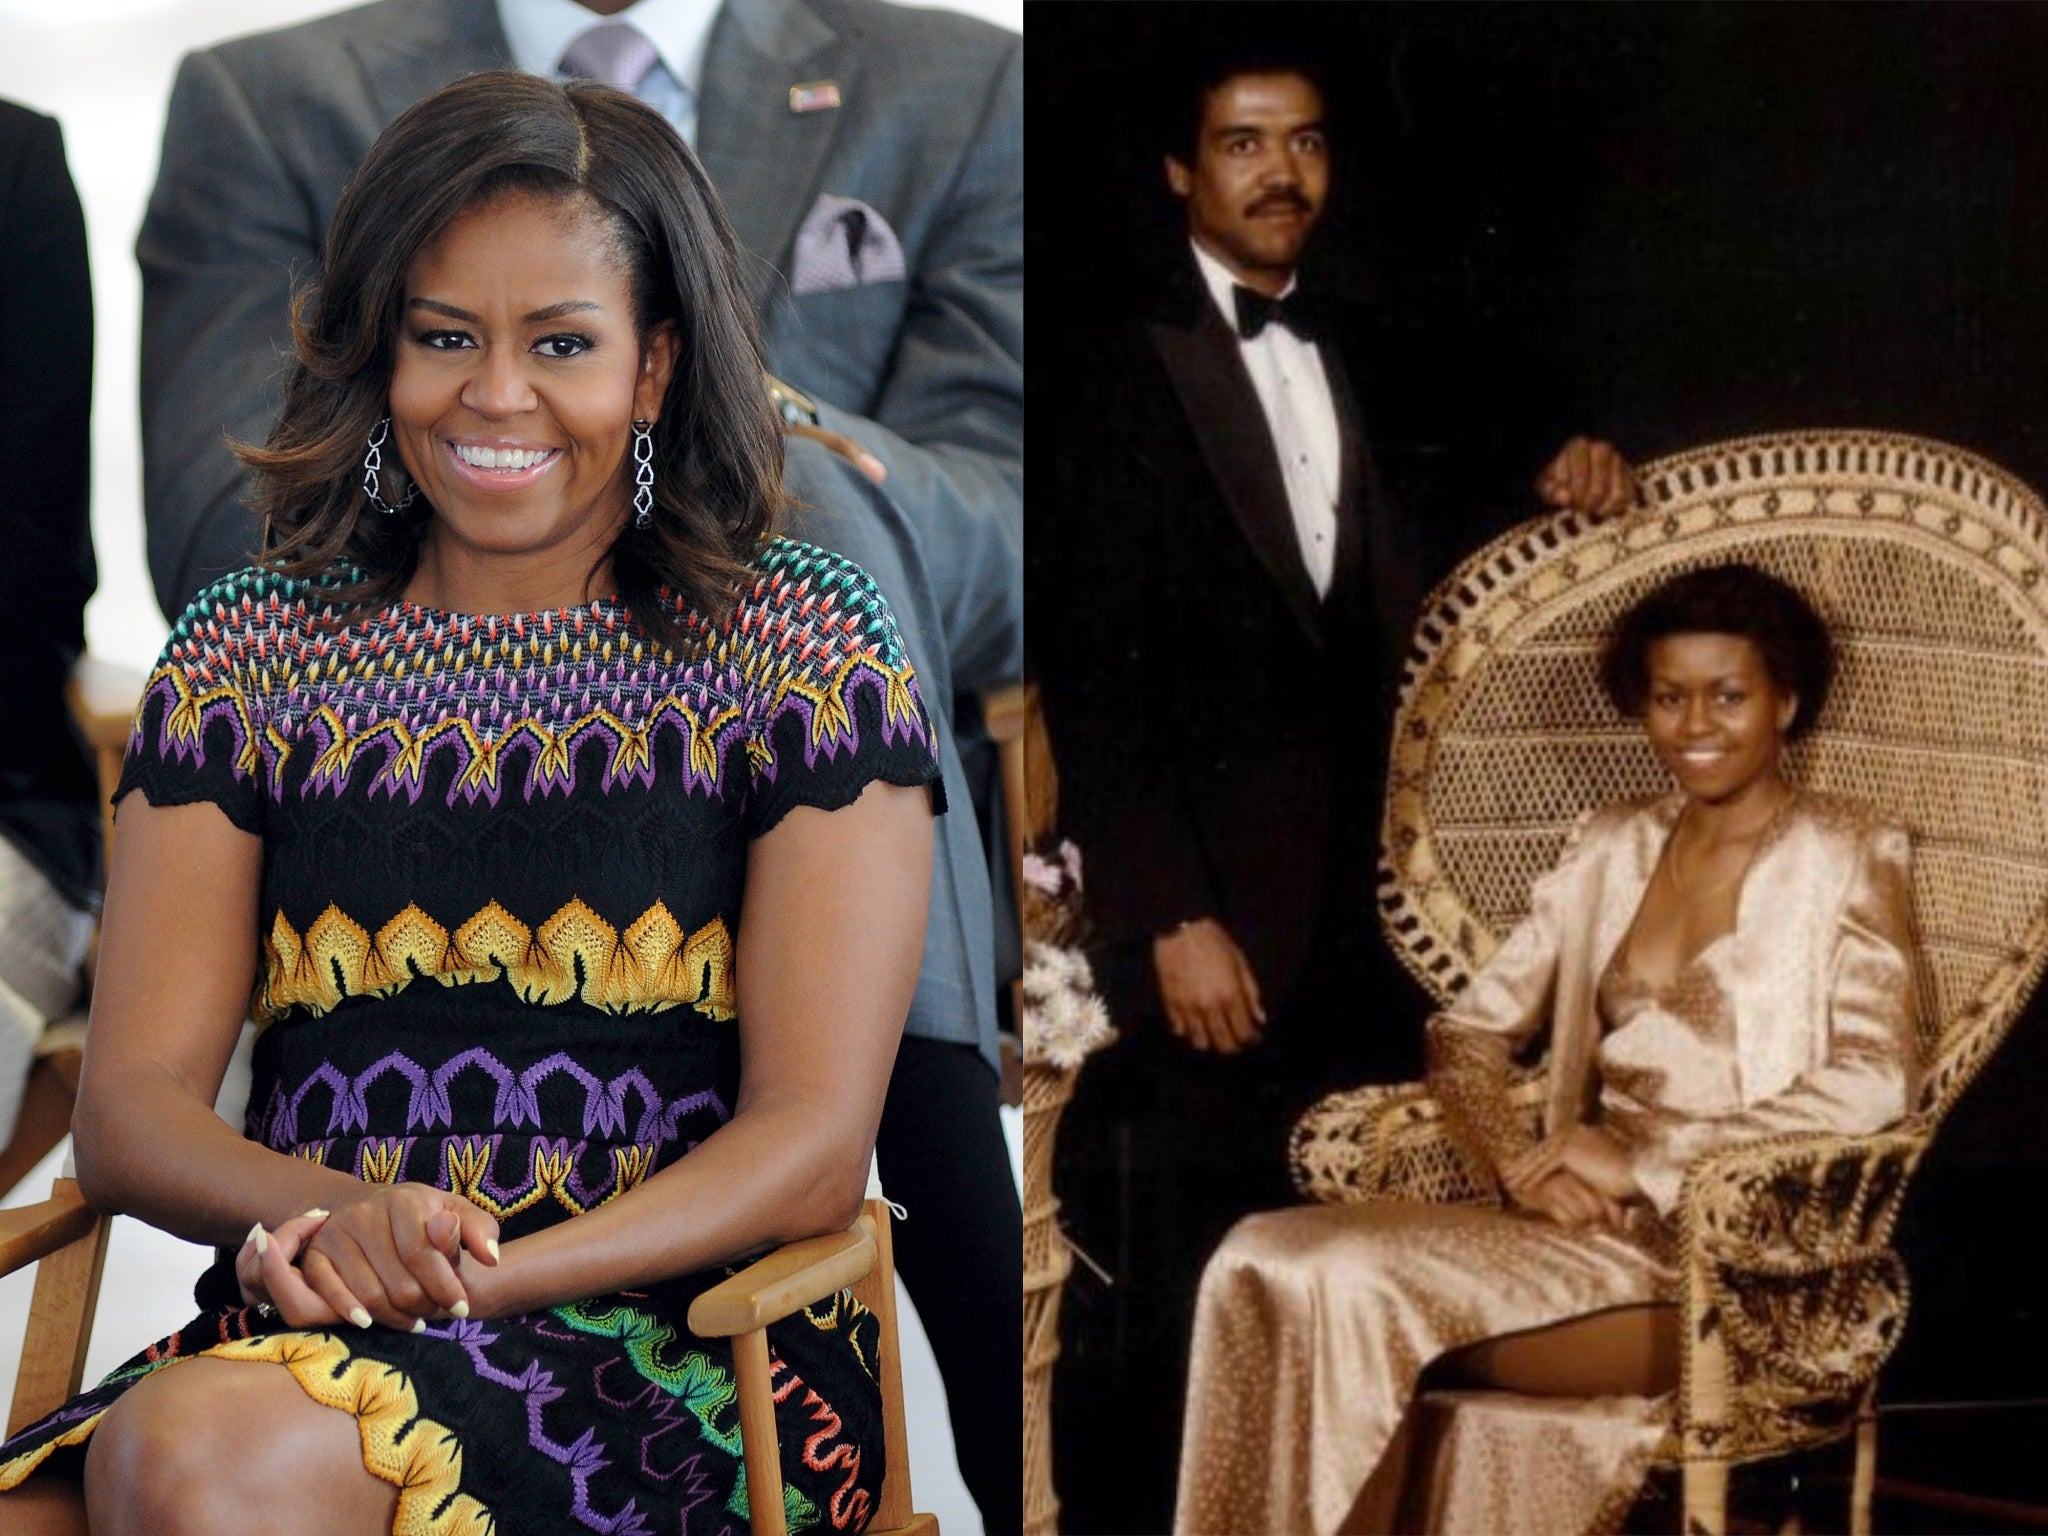 Michelle Obama shares throwback picture from prom night